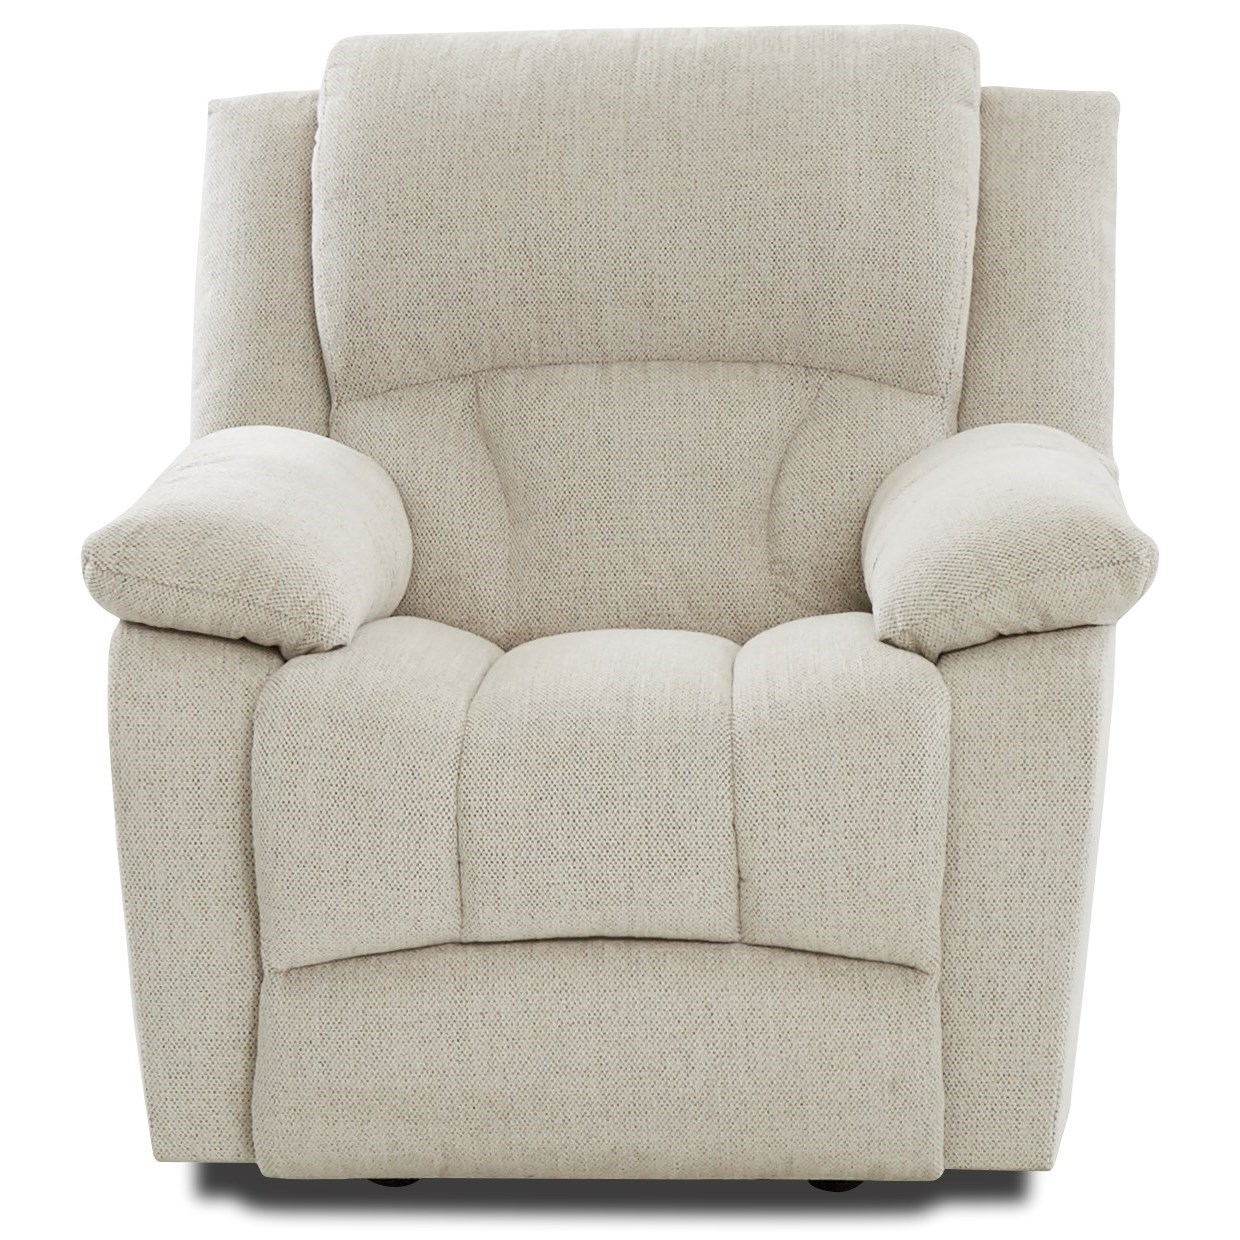 Casual Swivel Rocking Recliner with Extended Footrest